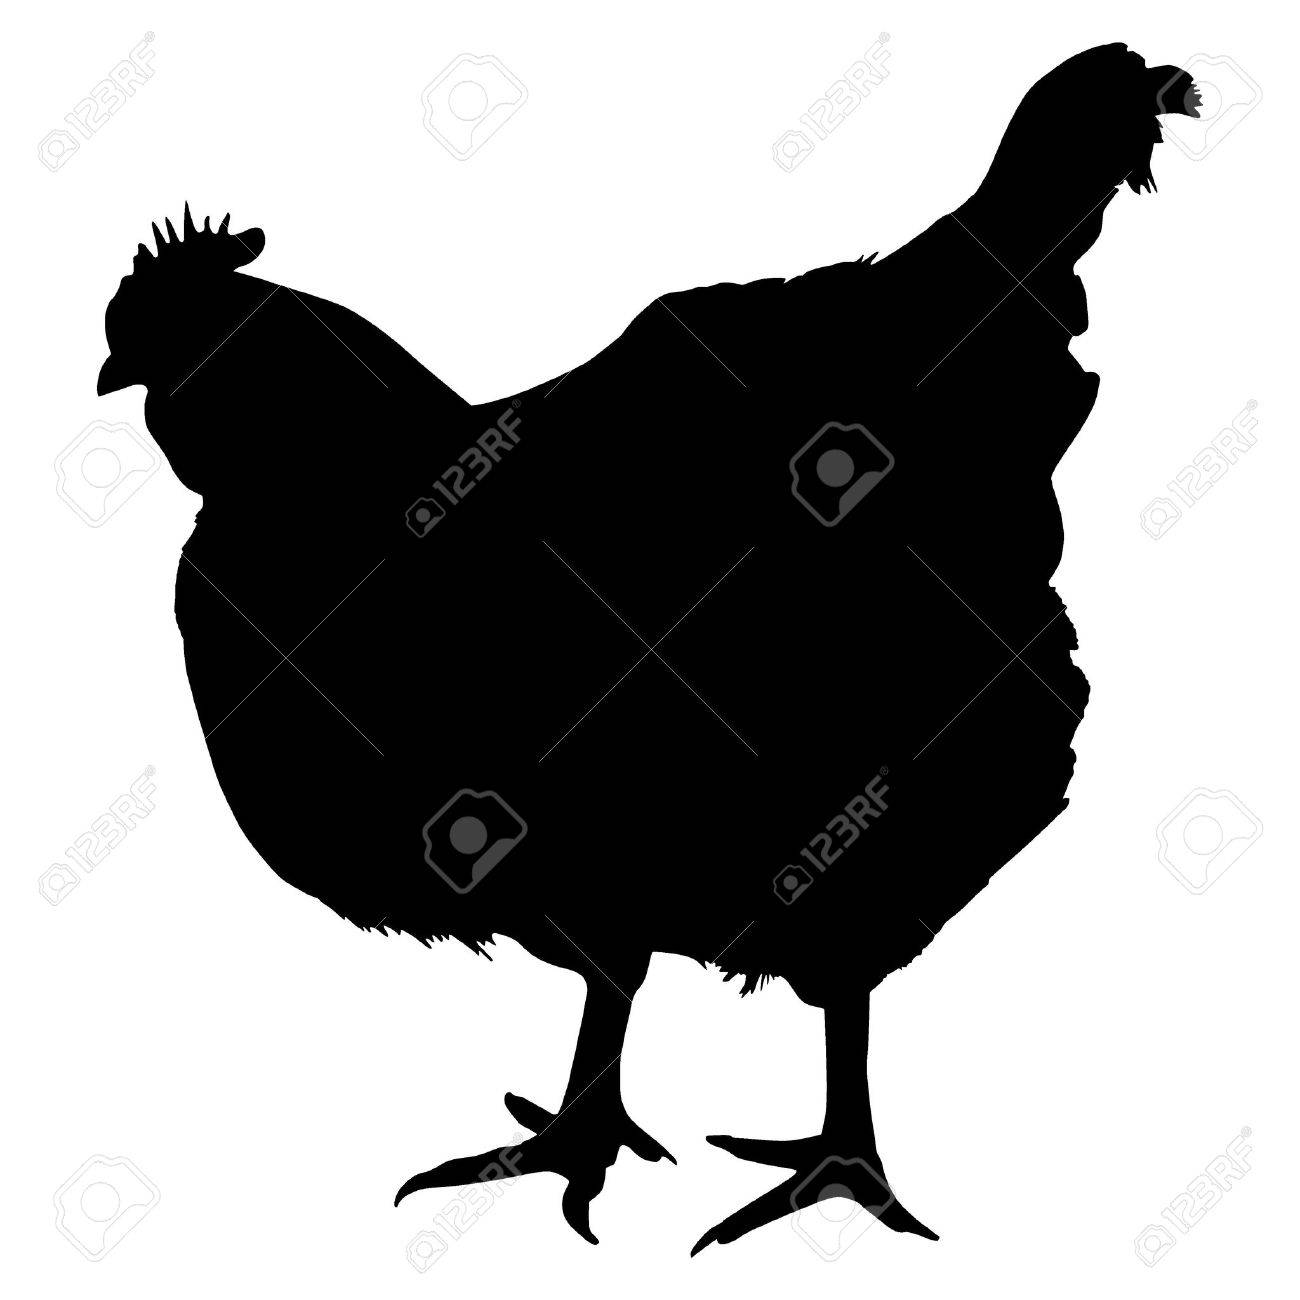 Silhouette of a chicken Stock Vector - 12494294